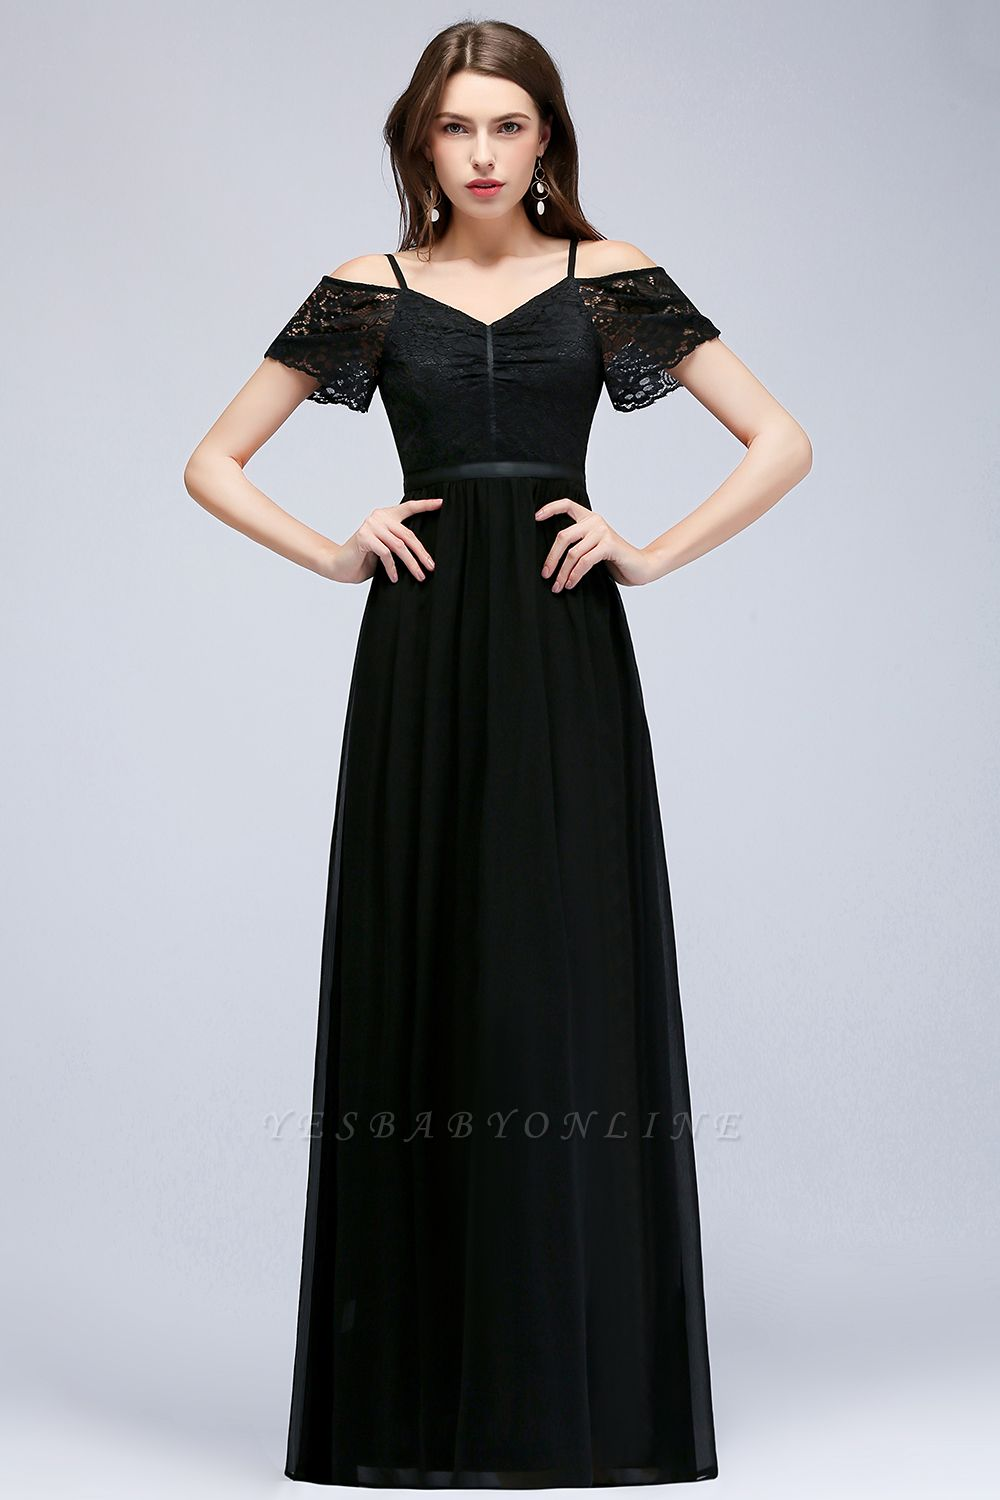 Cold-Shoulder Black  Sexy Short-Sleeves Lace Evening Dress